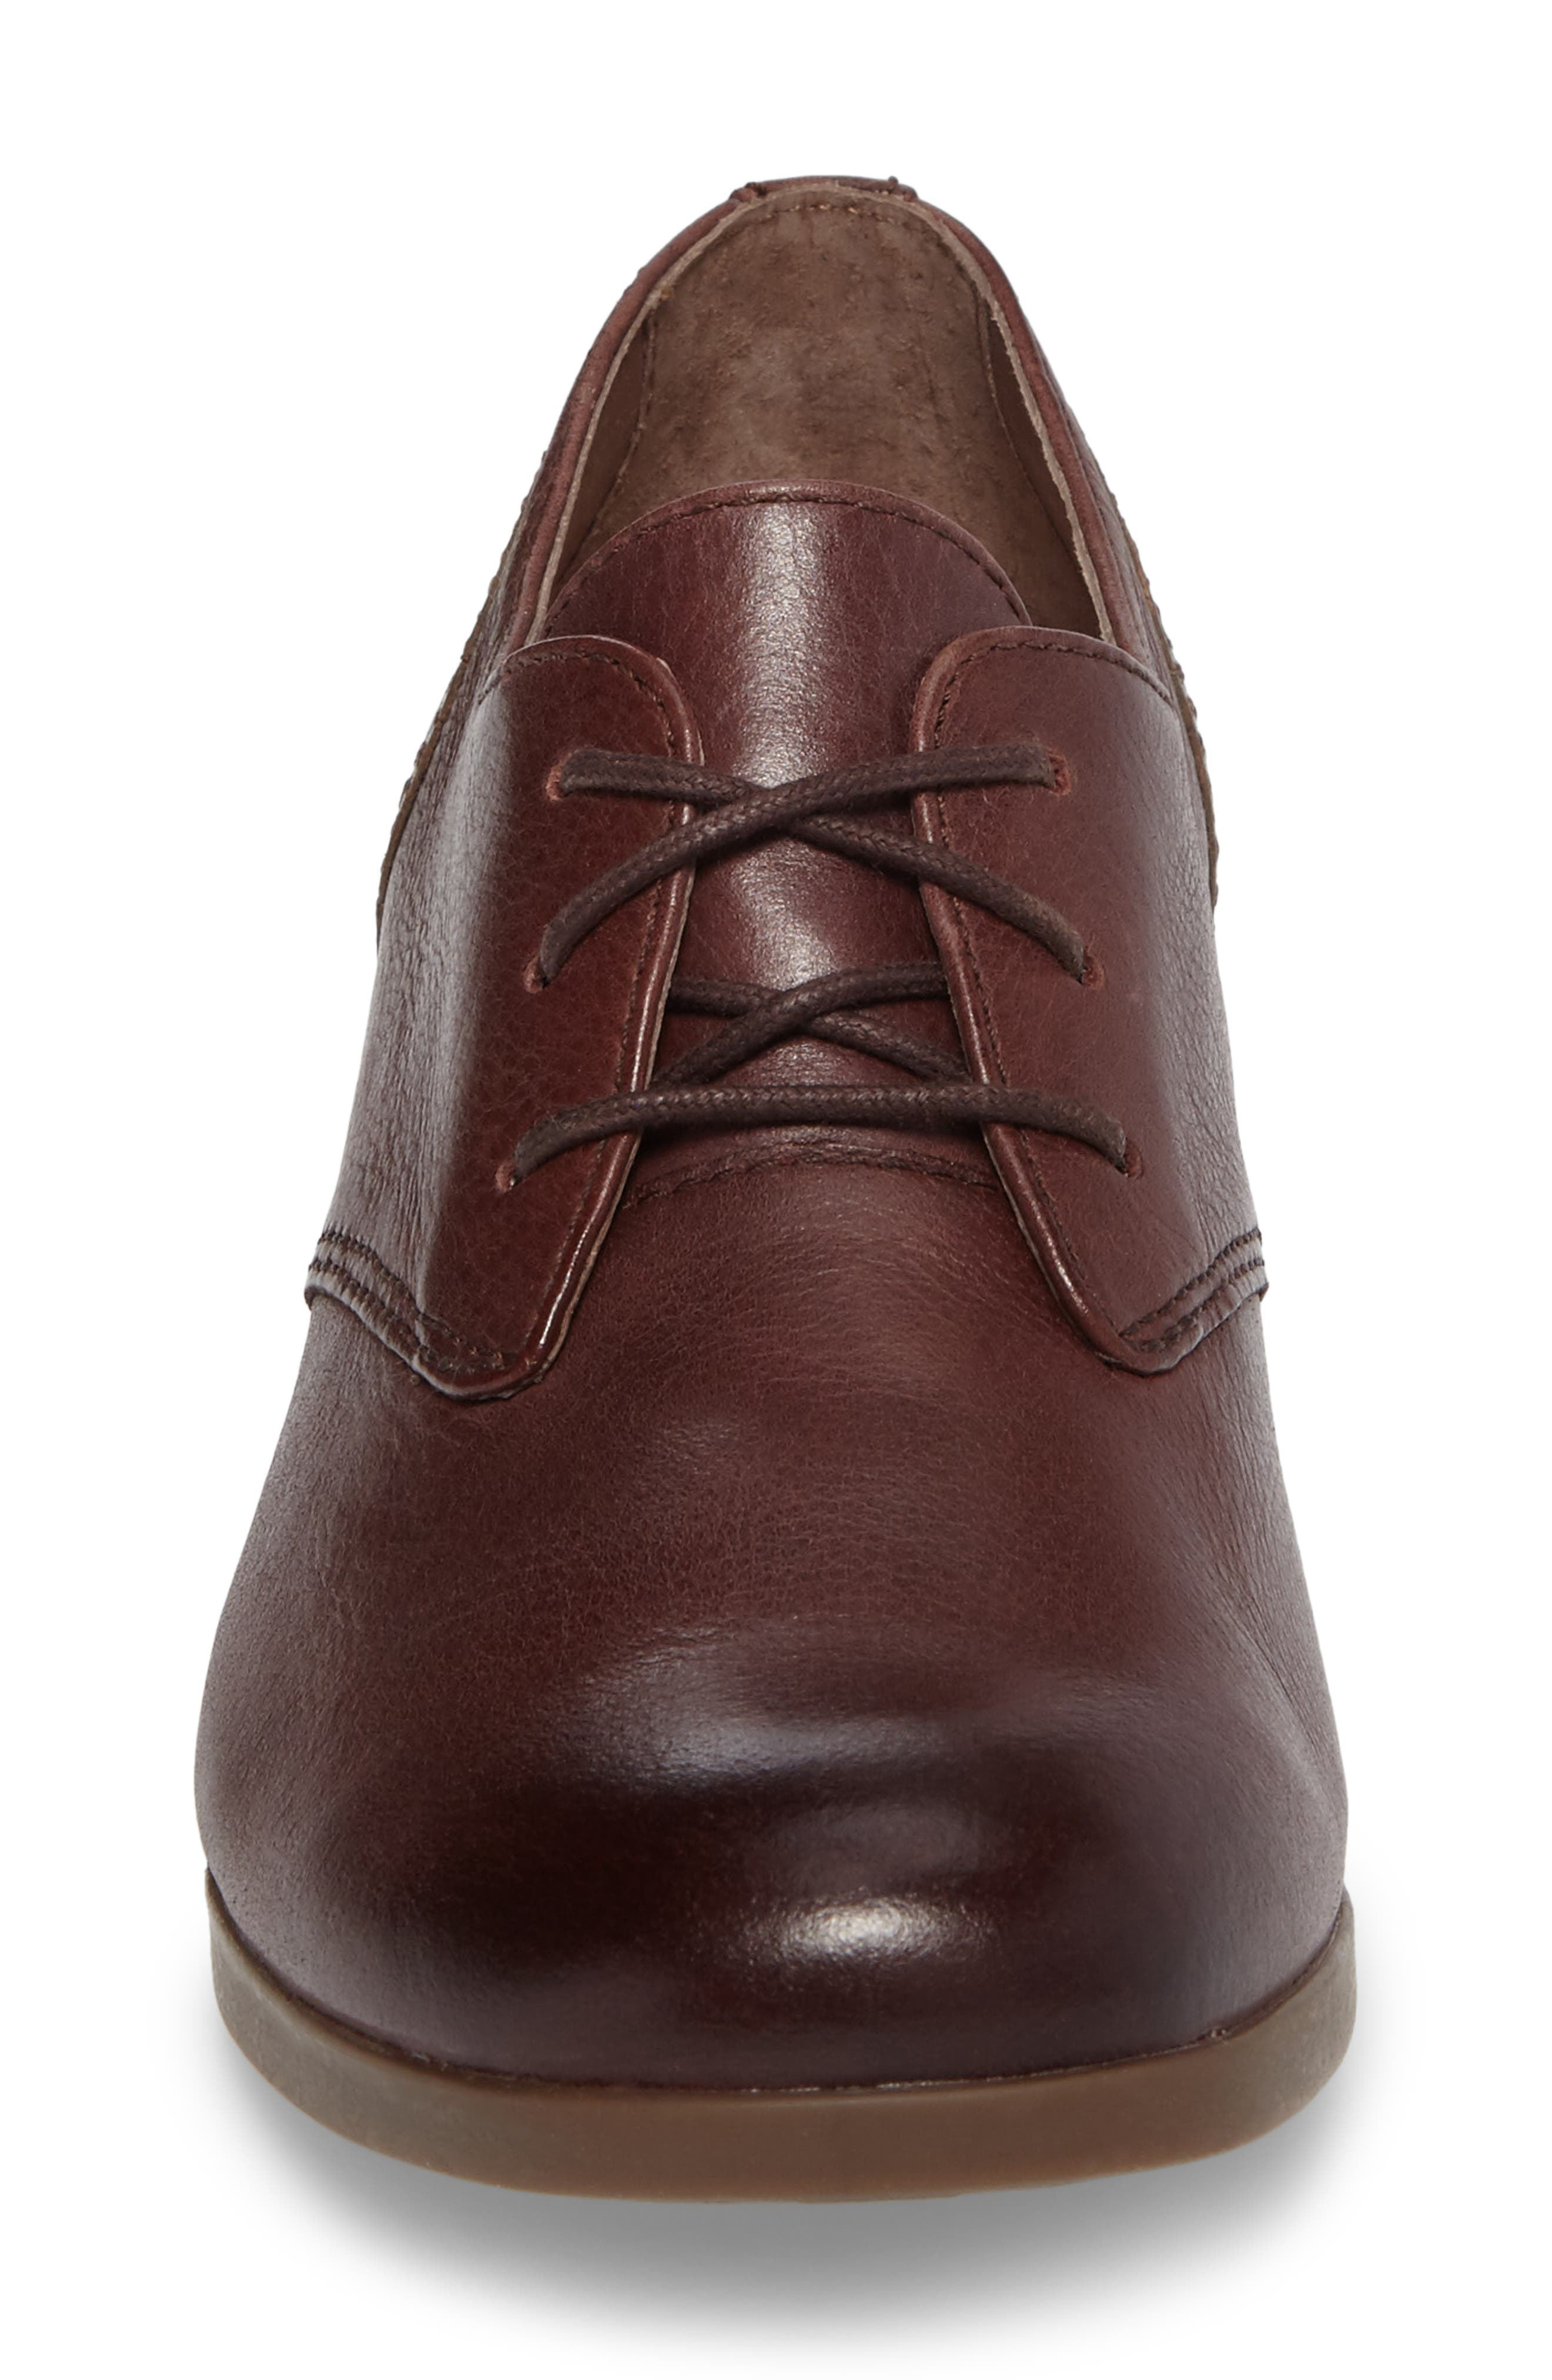 'Louise' Round Toe Derby,                             Alternate thumbnail 4, color,                             WINE BURNISHED LEATHER